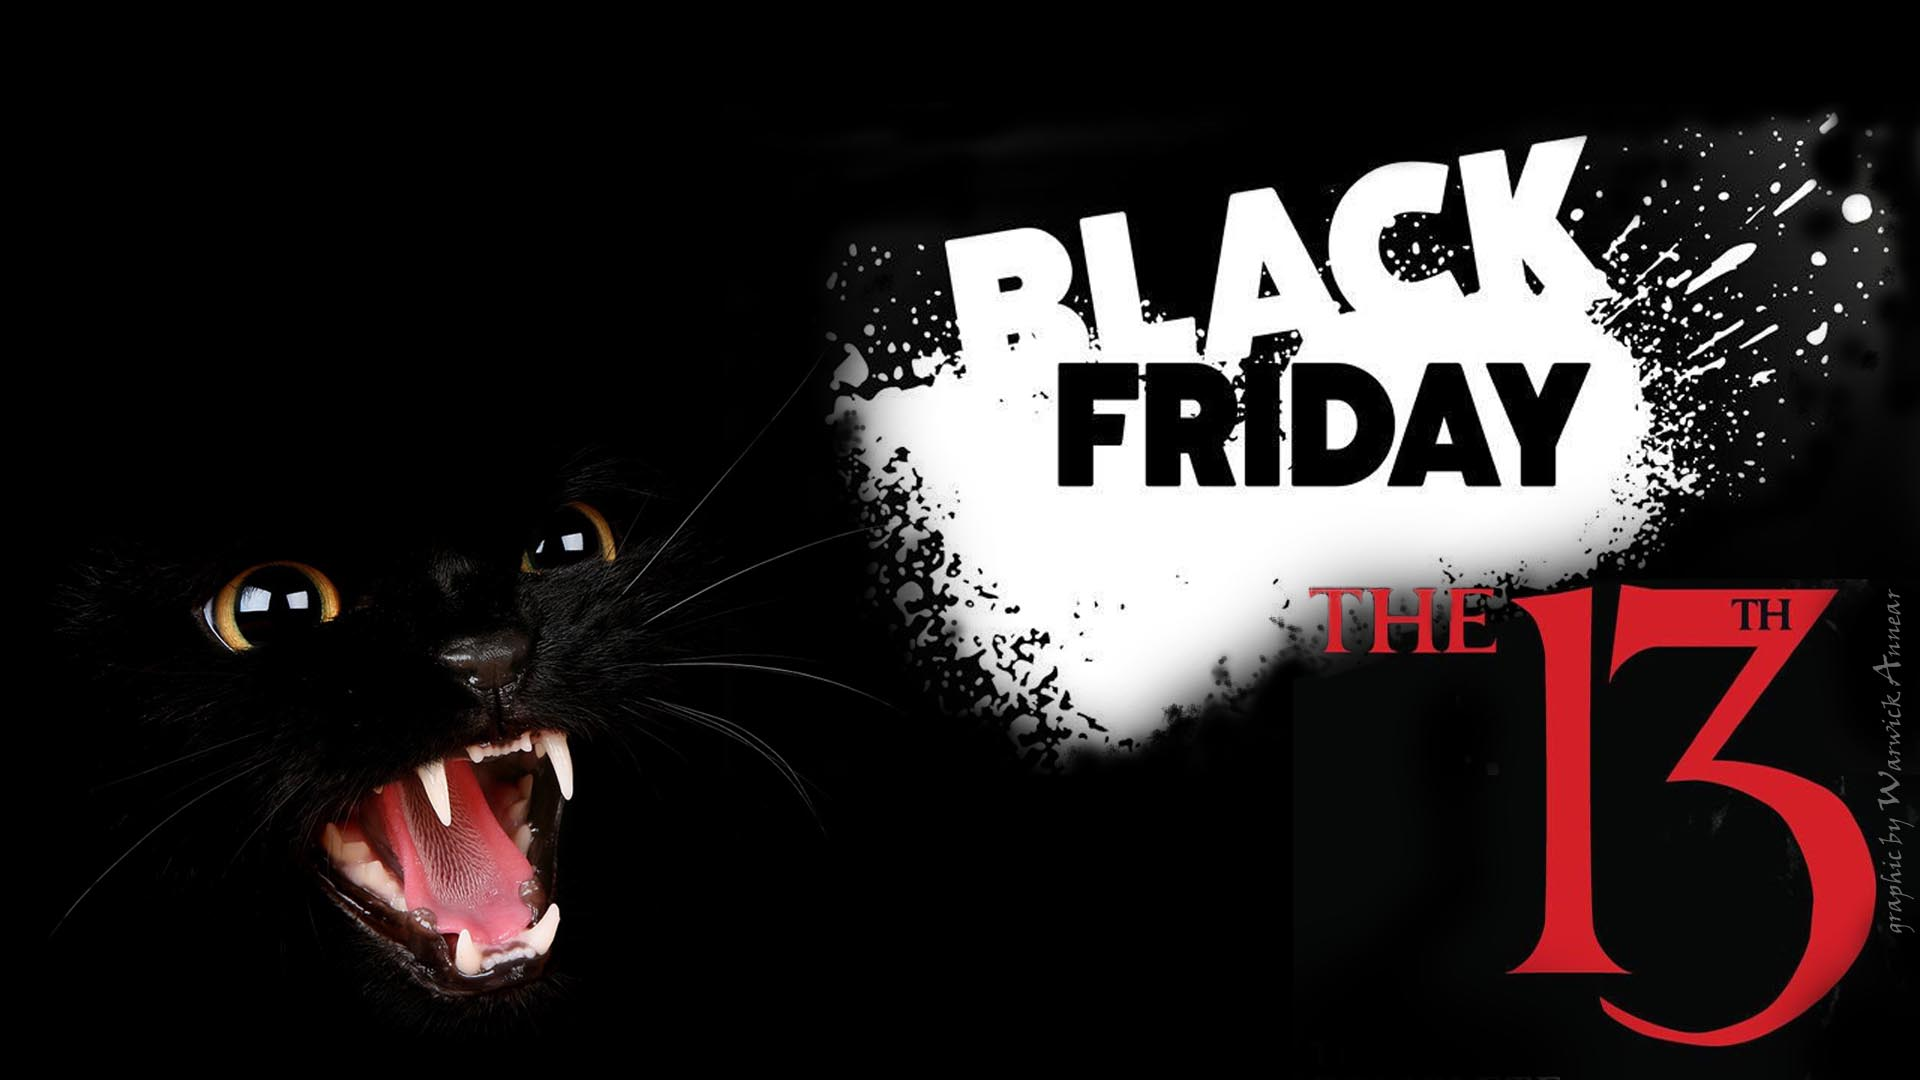 Black Friday the 13th HD Wallpaper Background Image 1920x1080 1920x1080